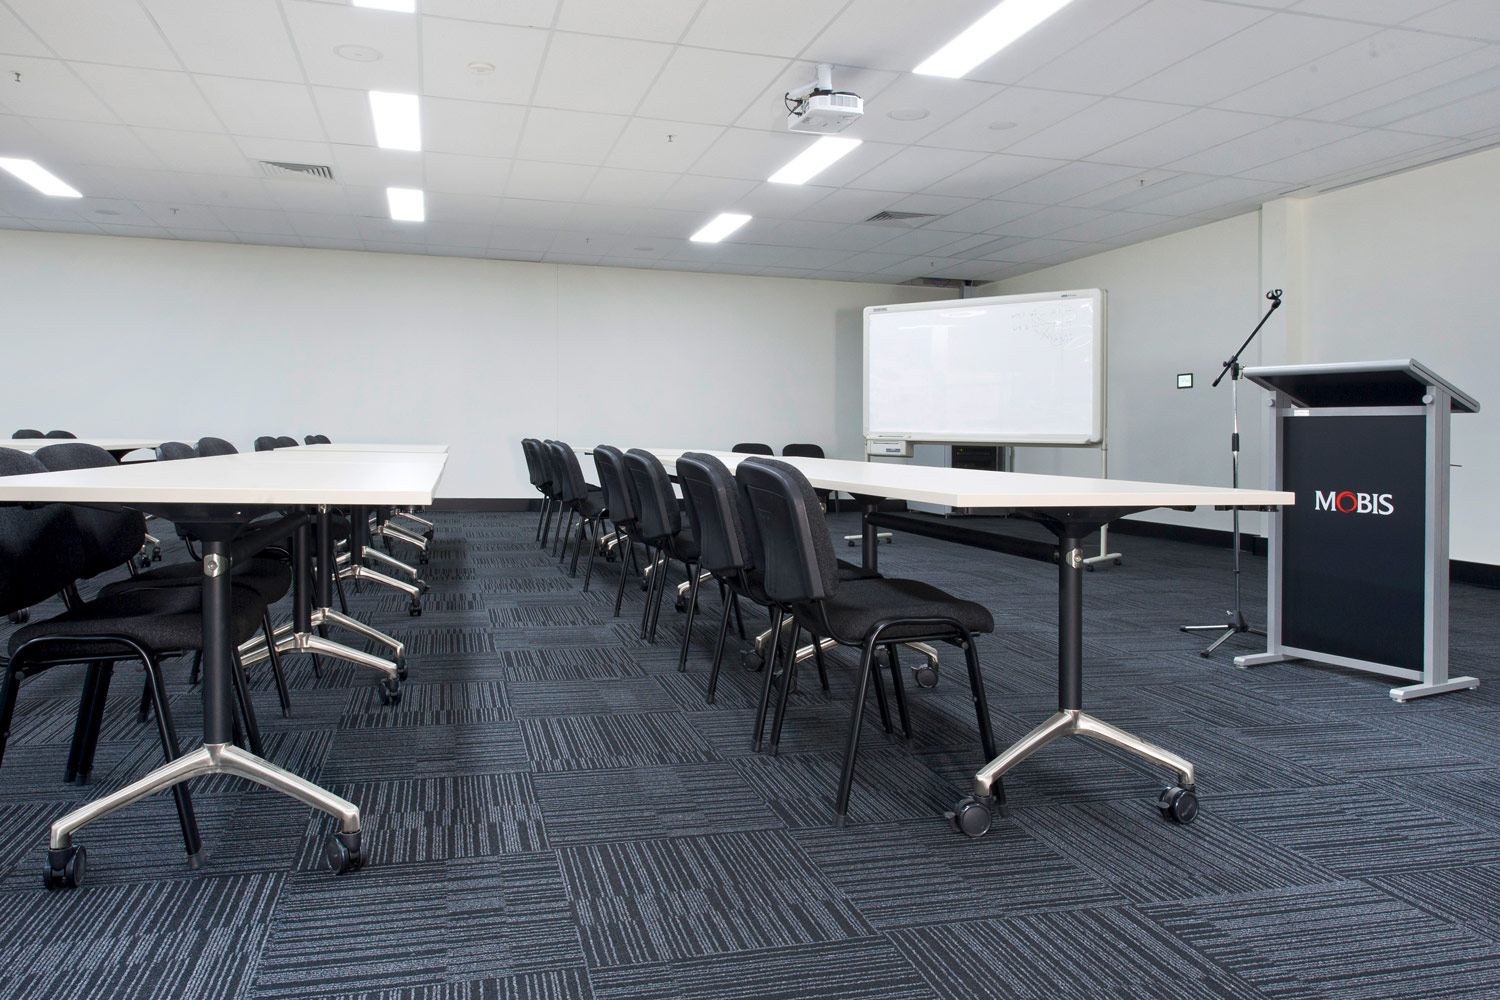 Flip Tables and training room chairs